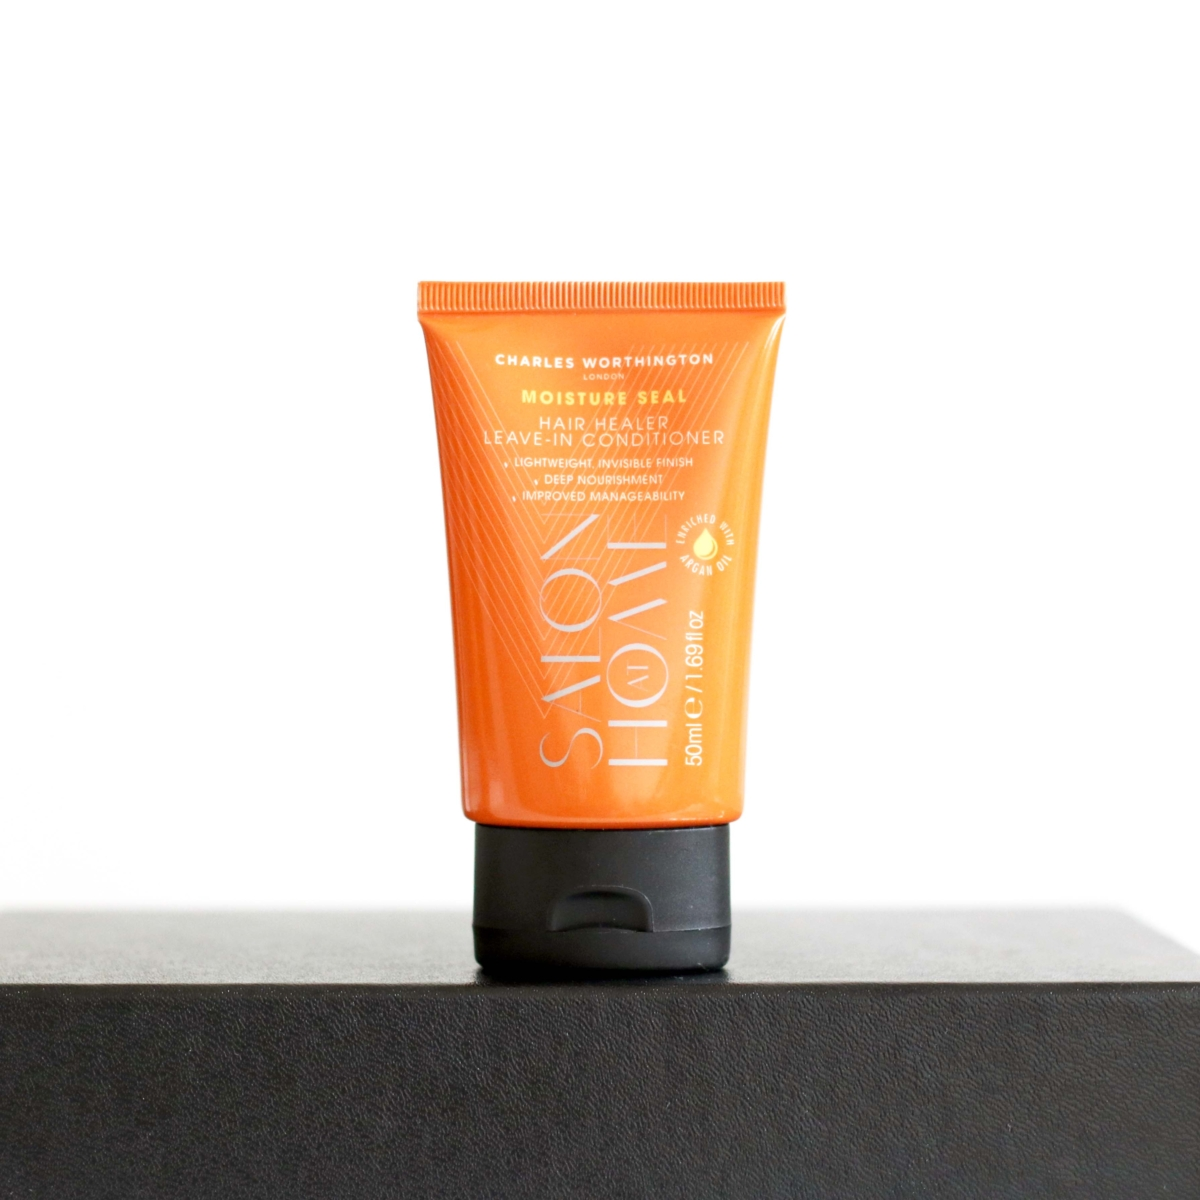 Latest in Beauty Build Your Own Box Review - Charles Worthington Moisture Seal 2